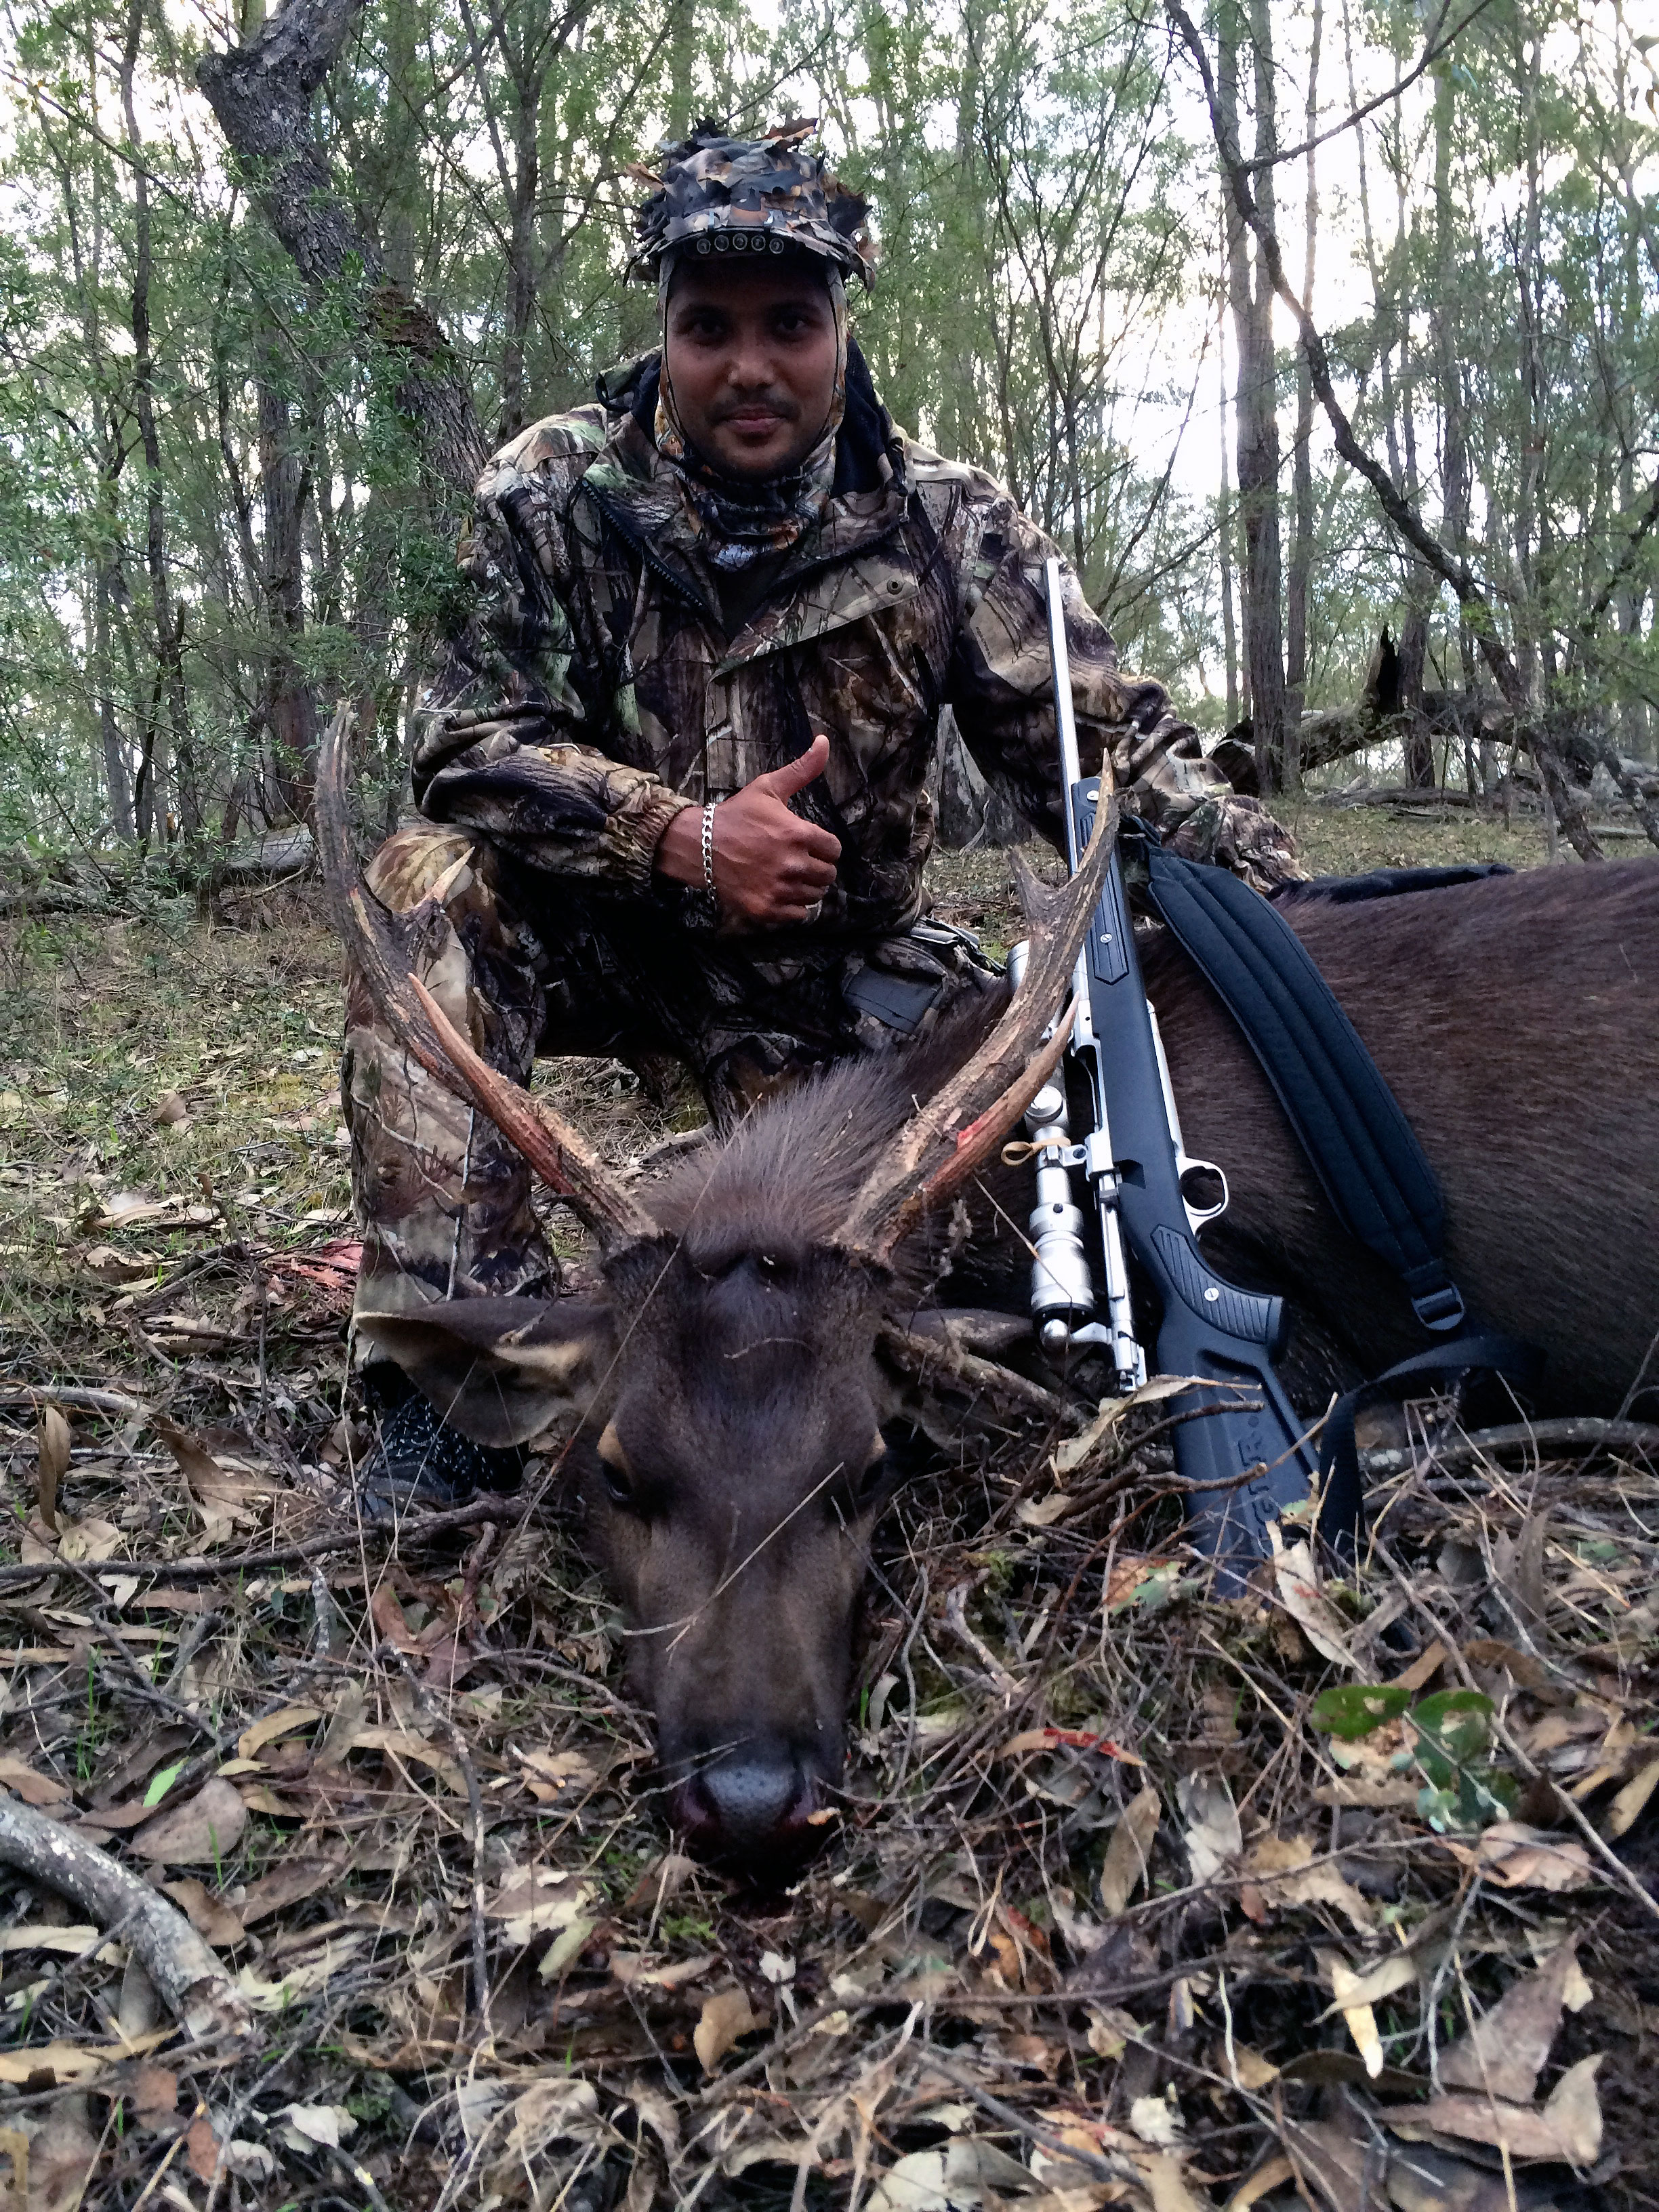 Andrews first sambar deer